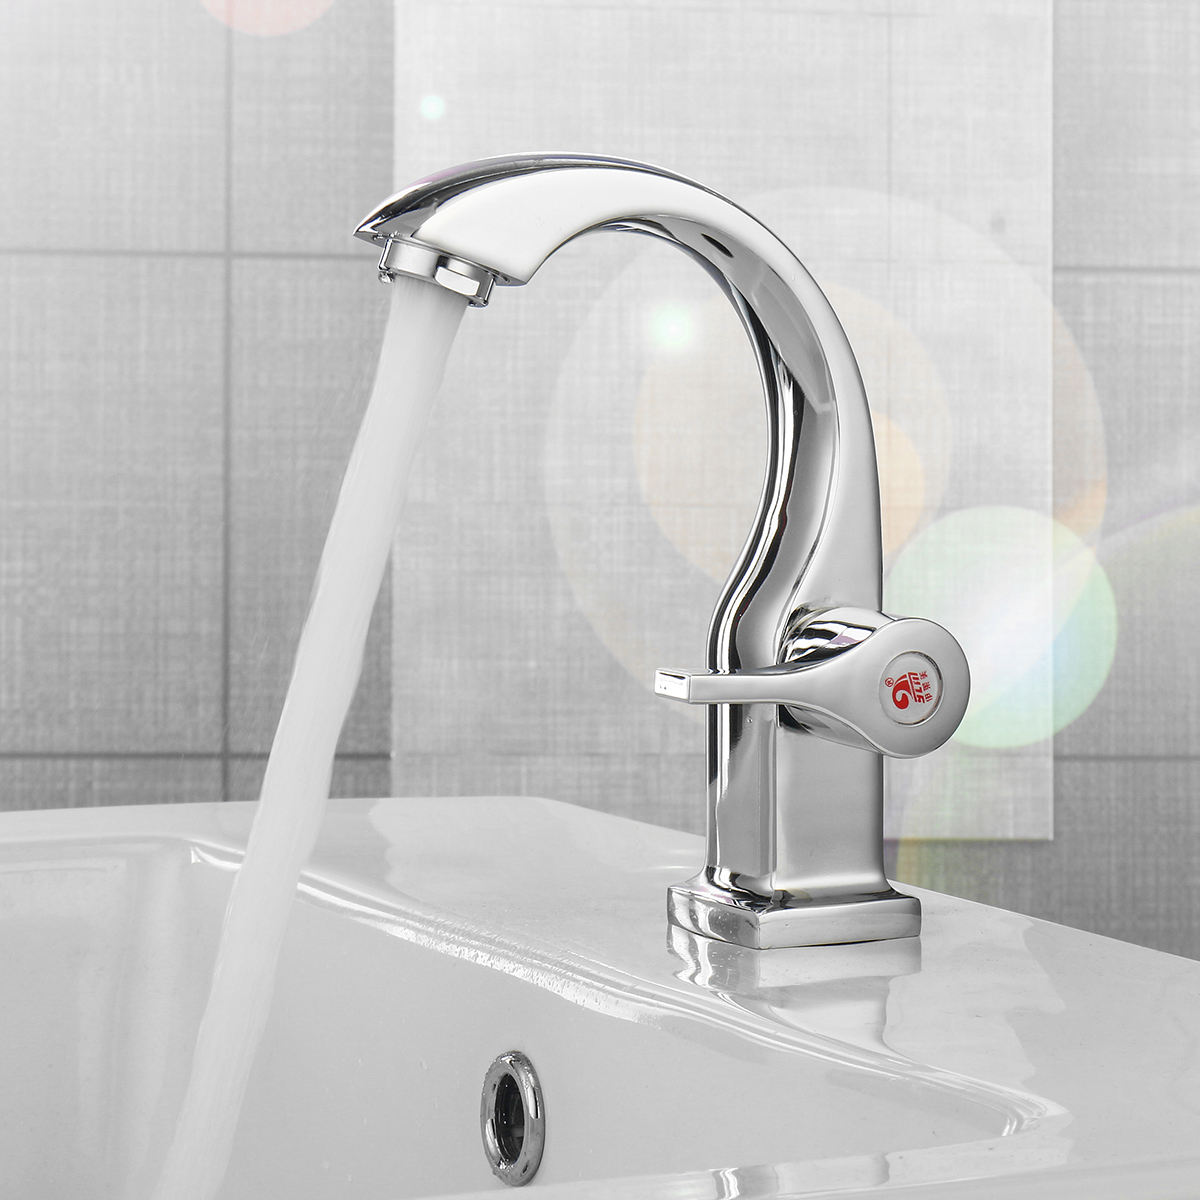 Modern Swan Neck Faucet Bathroom Sink Basin Deck Mount Sink Tap Cold Water